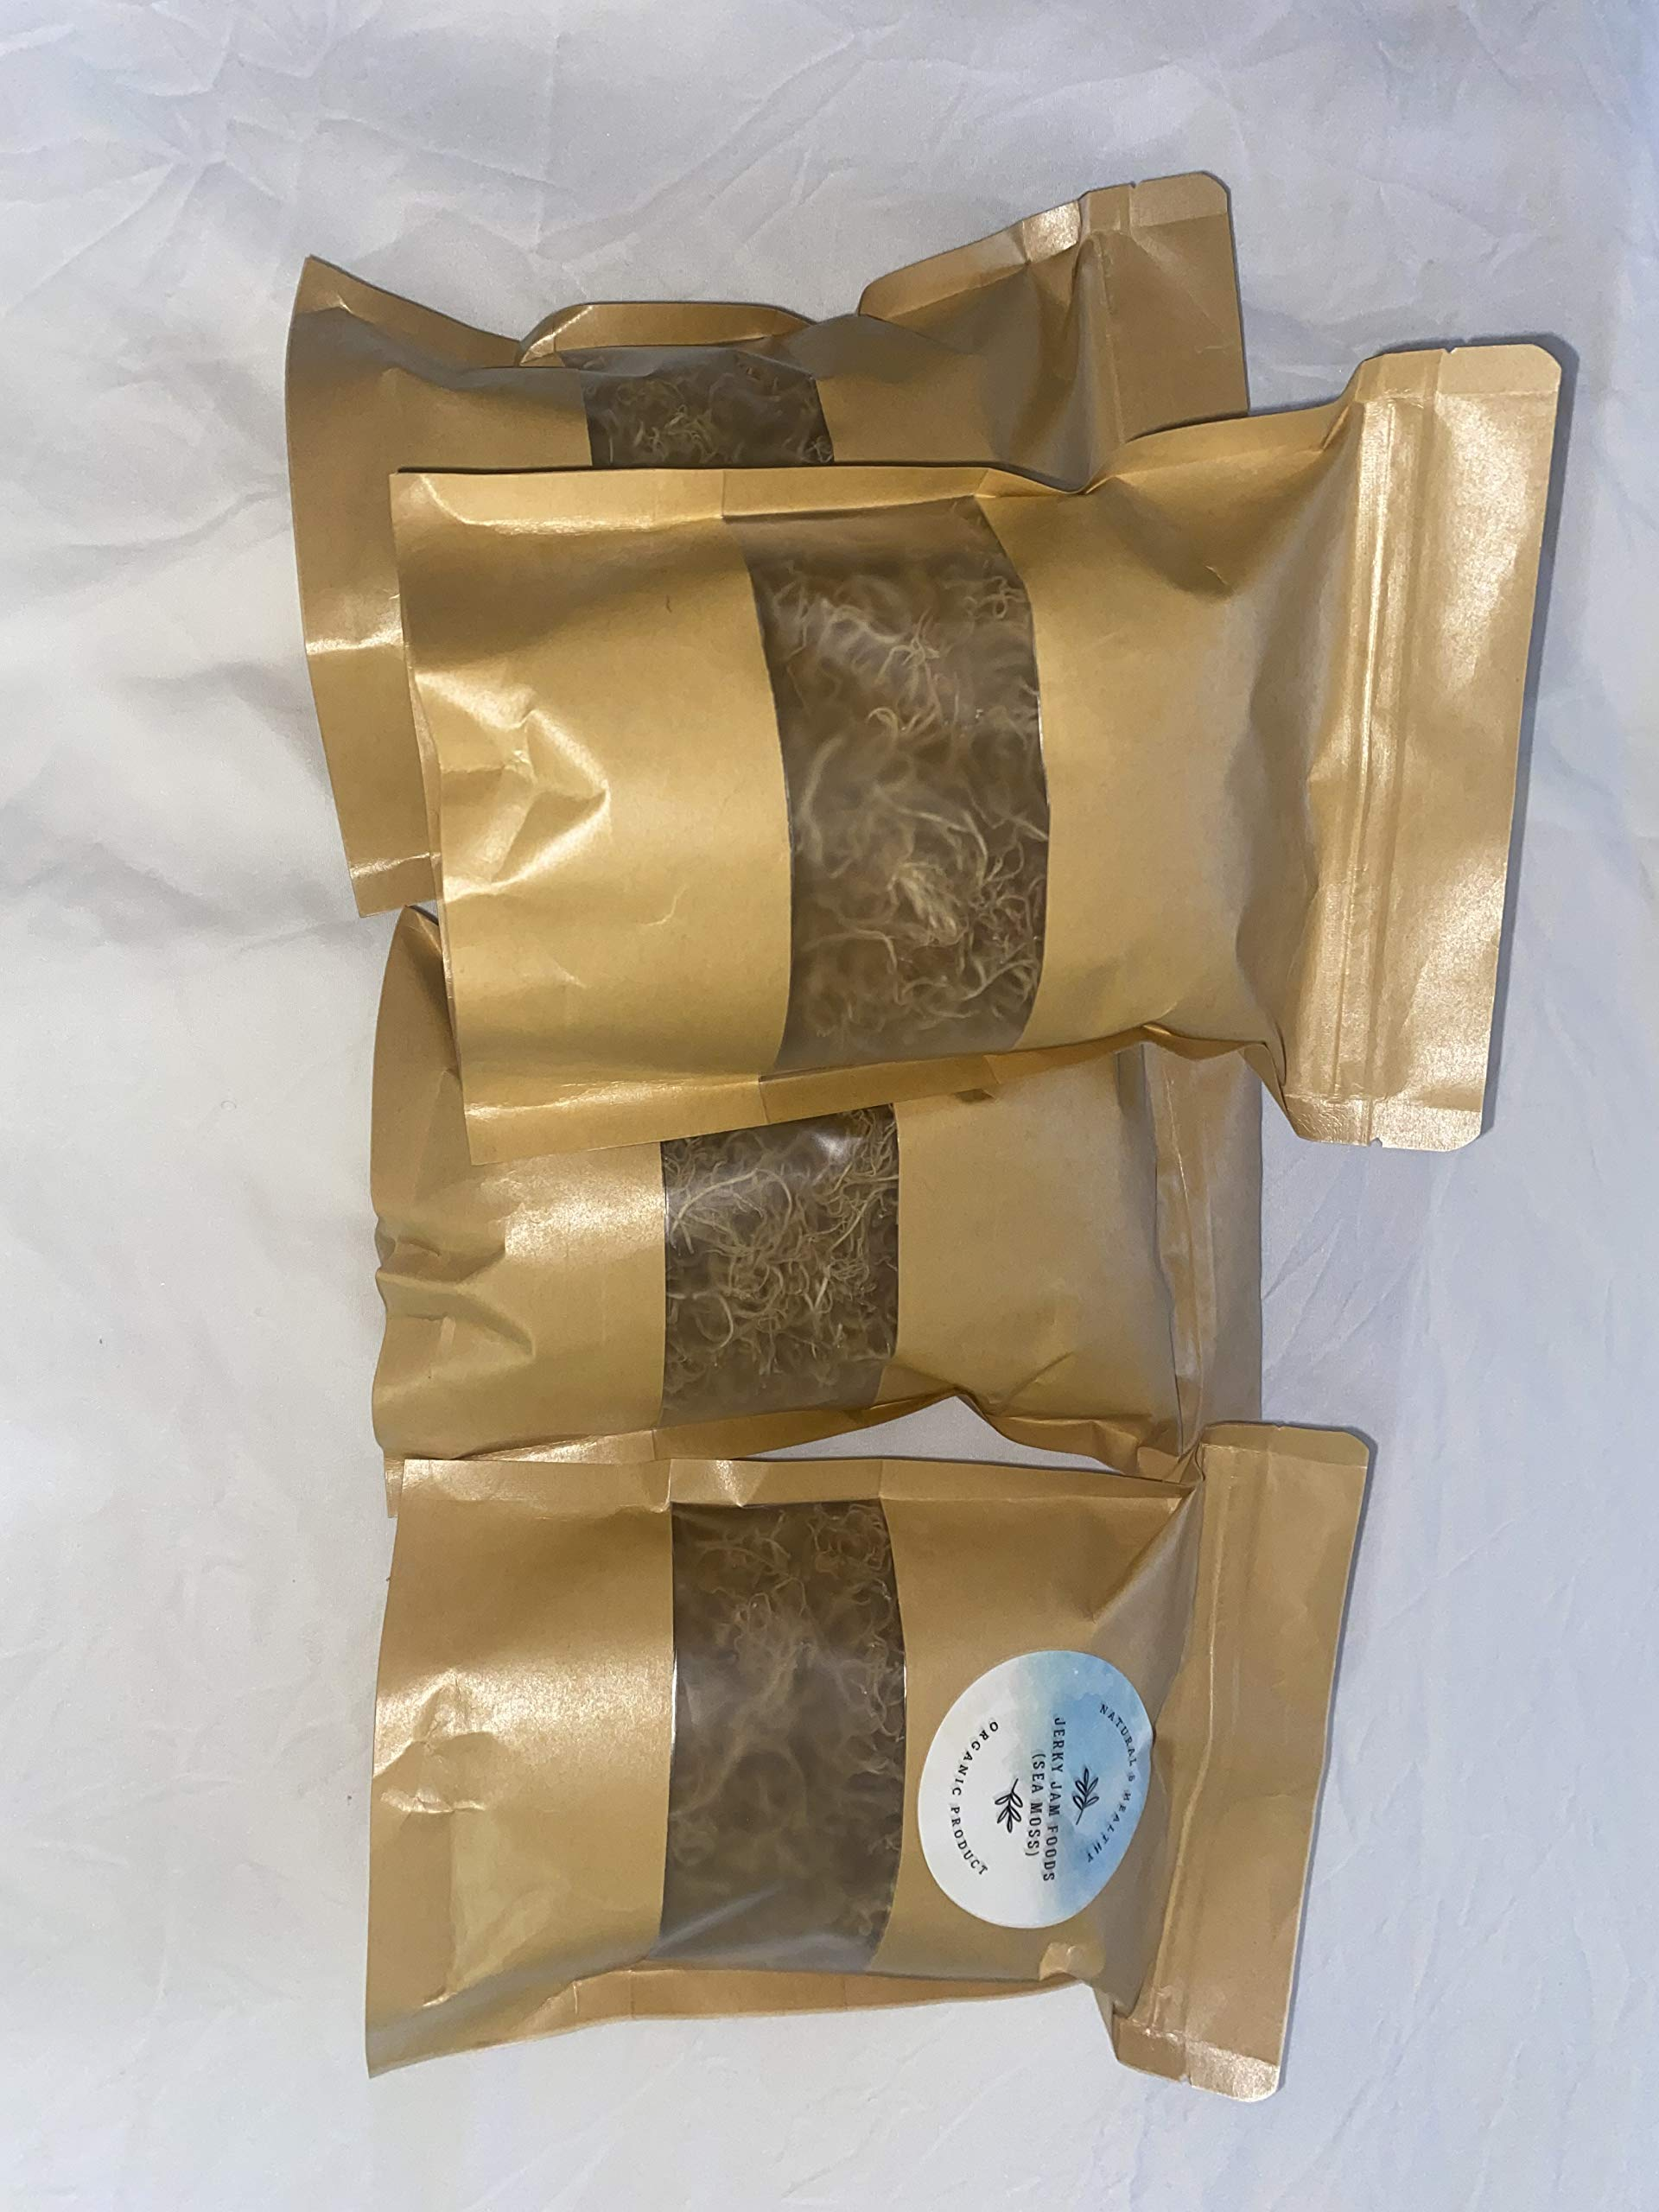 SEA MOSS (RAW) 2 lb - NATURAL IRISH MOSS,CHONDRUS CRISPUS,Jamaica Drink Below